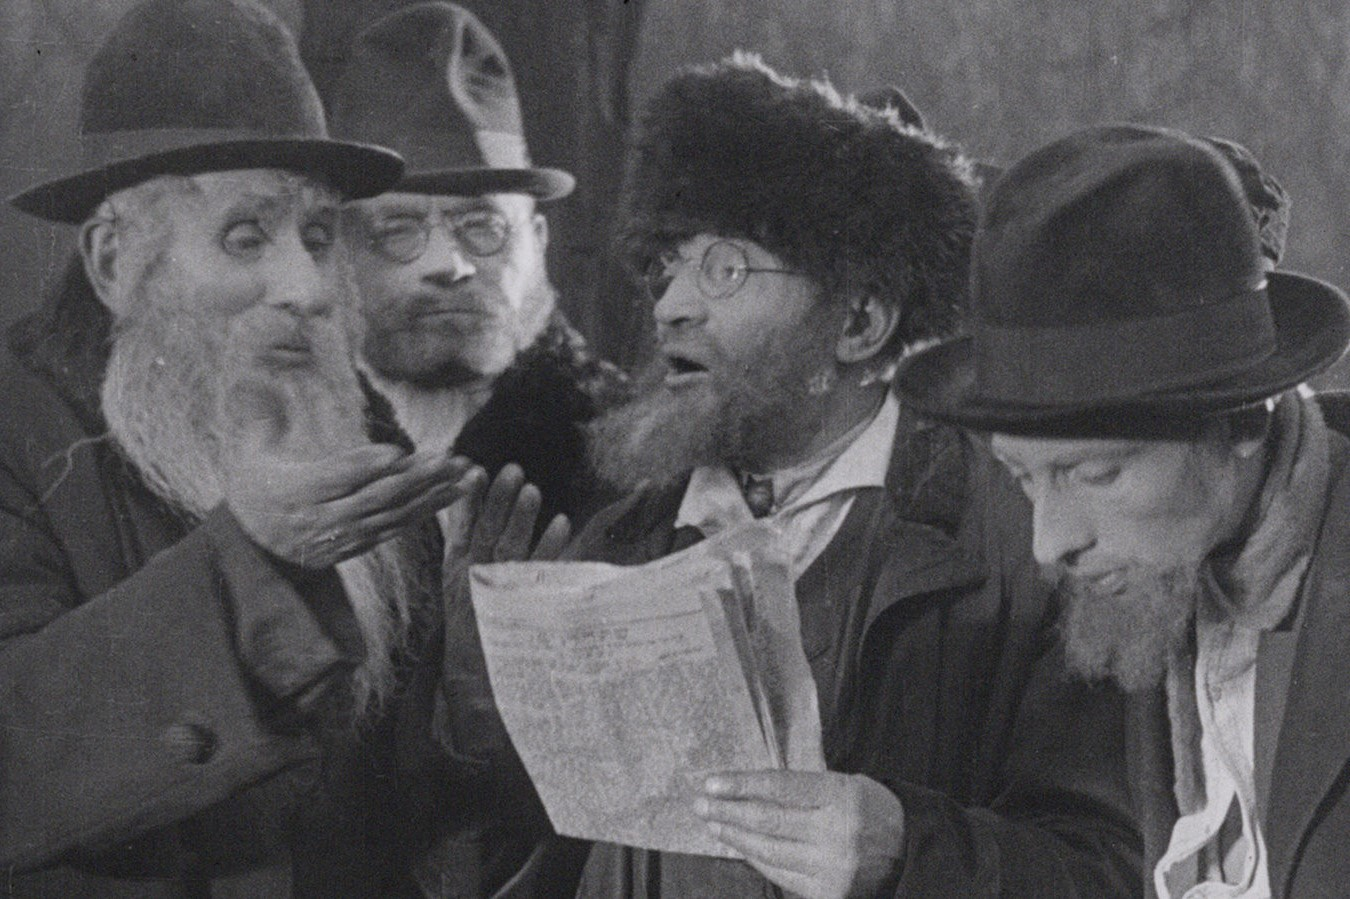 Still from the film The City Without Jews